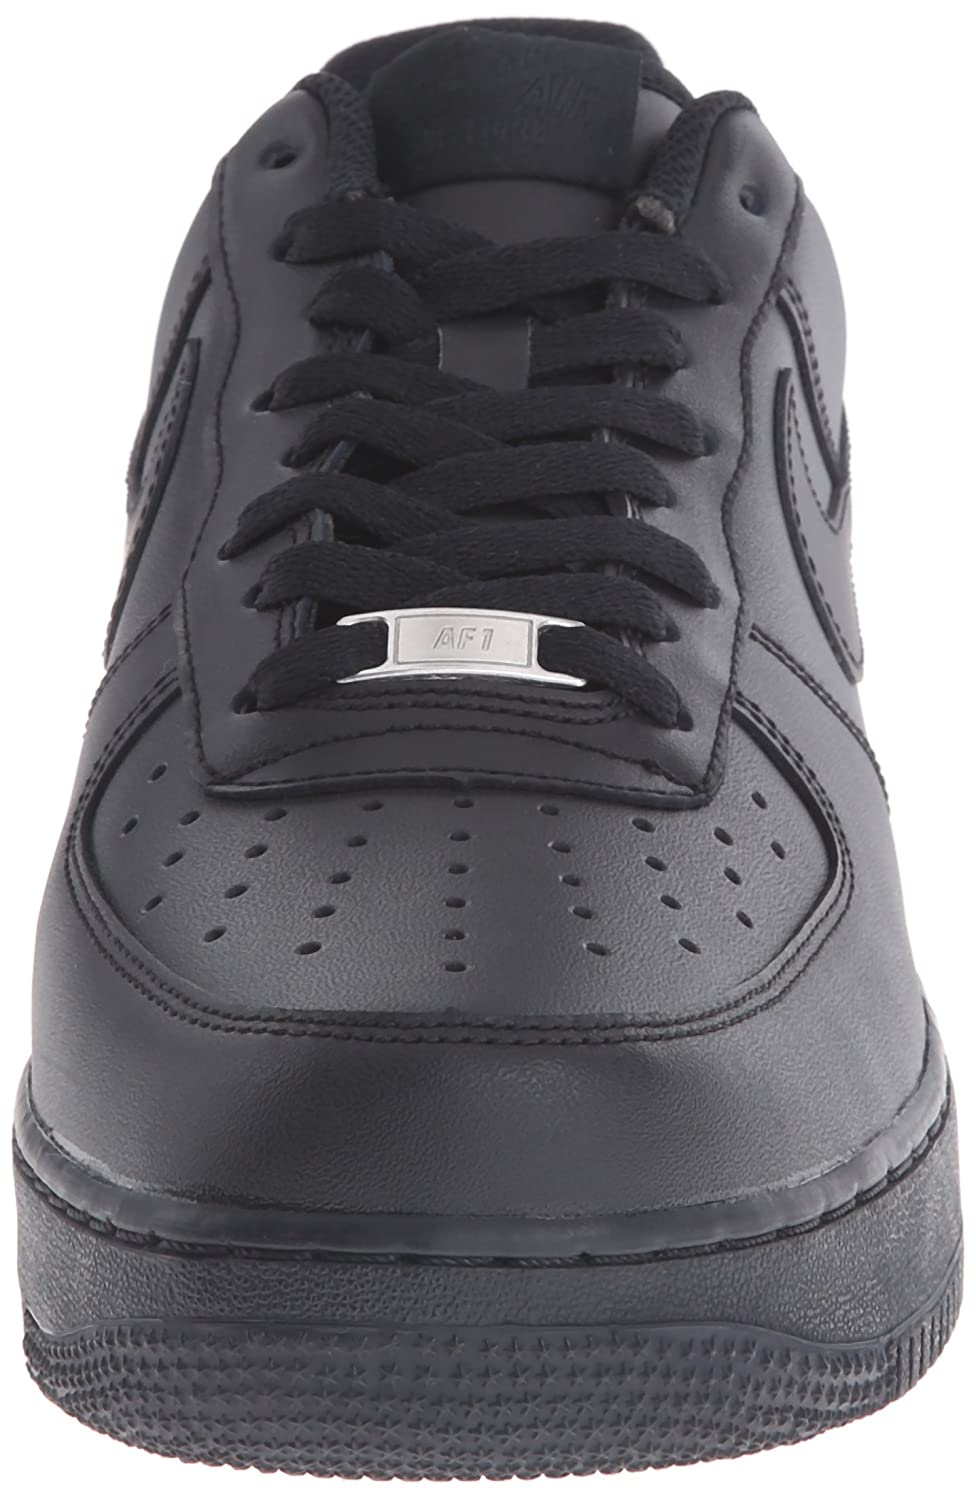 hot sale online f26c1 e3a79 Amazon.com   Nike Men s Air Force 1 Low Sneaker   Basketball